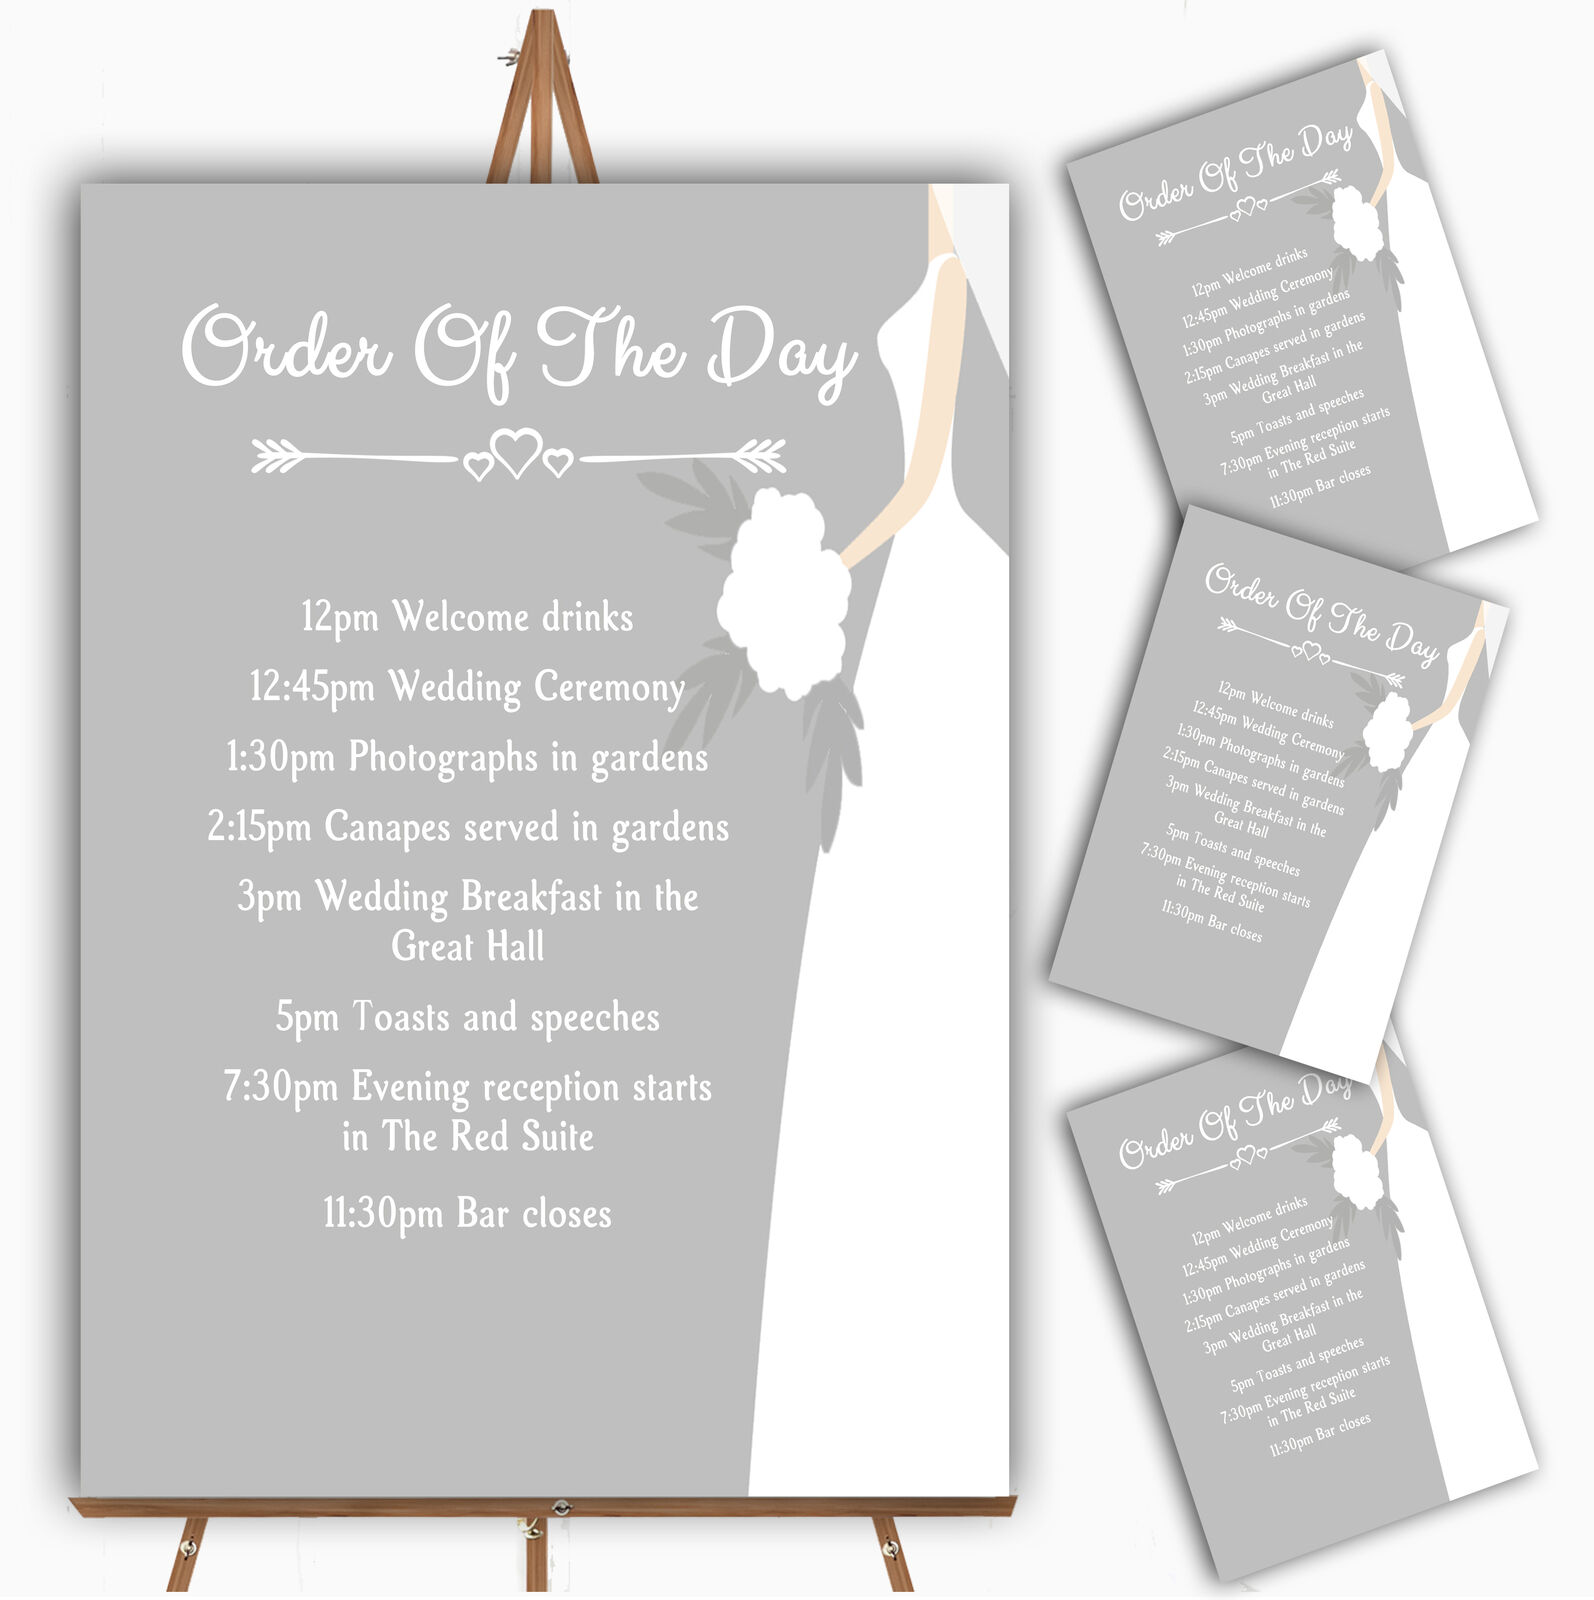 Great Weiß Bride Personalised Wedding Order Of The Day Cards & Signs